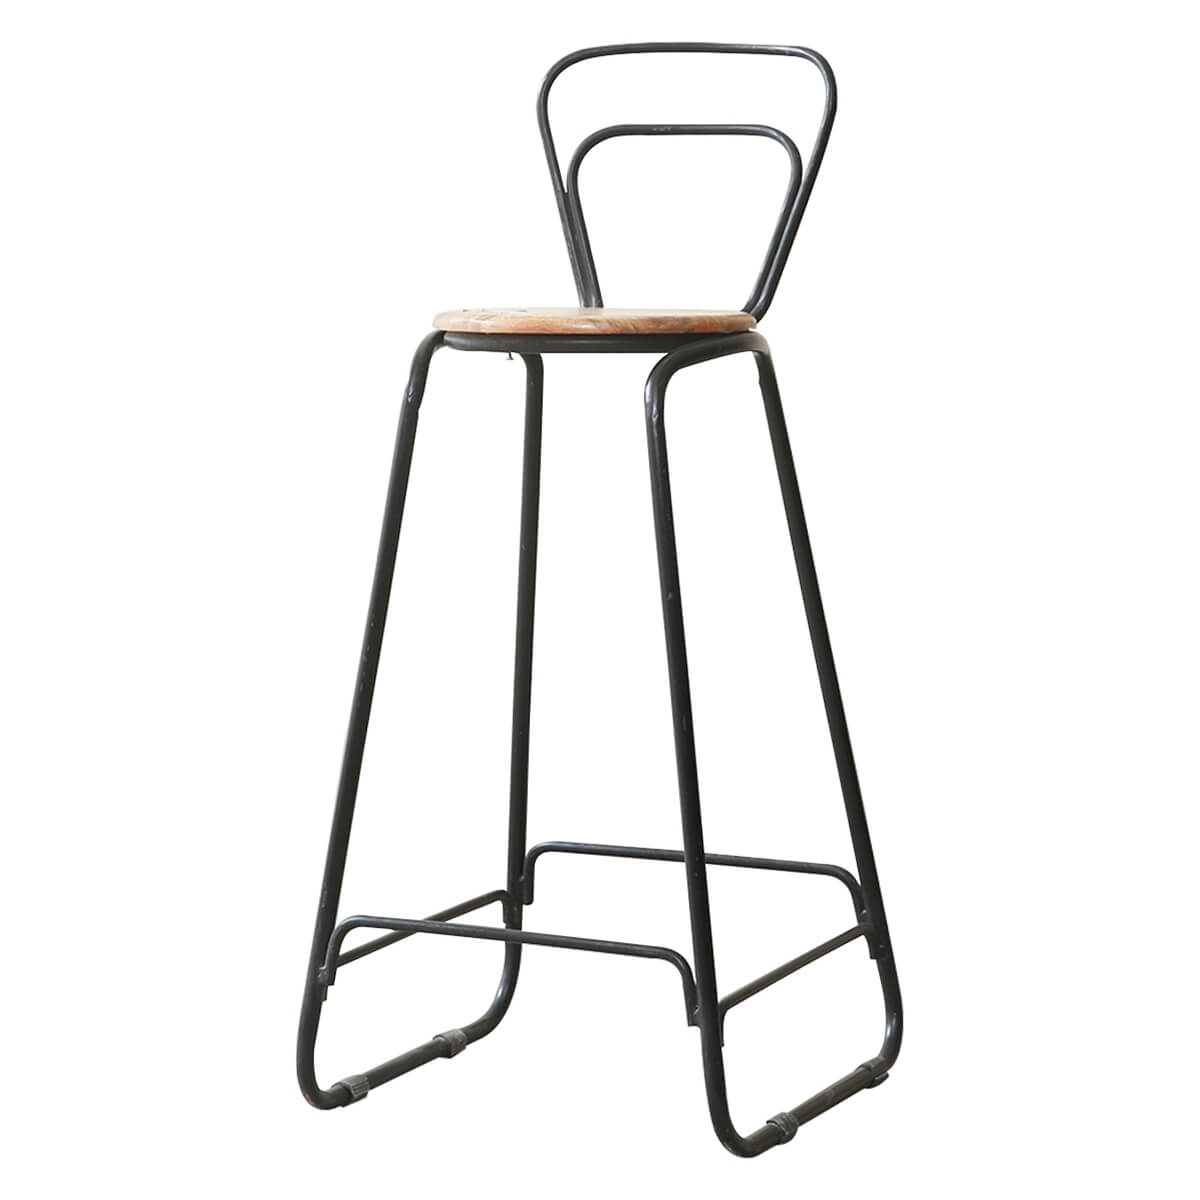 Pescia Solid Wood Industrial Accent Bar Chair